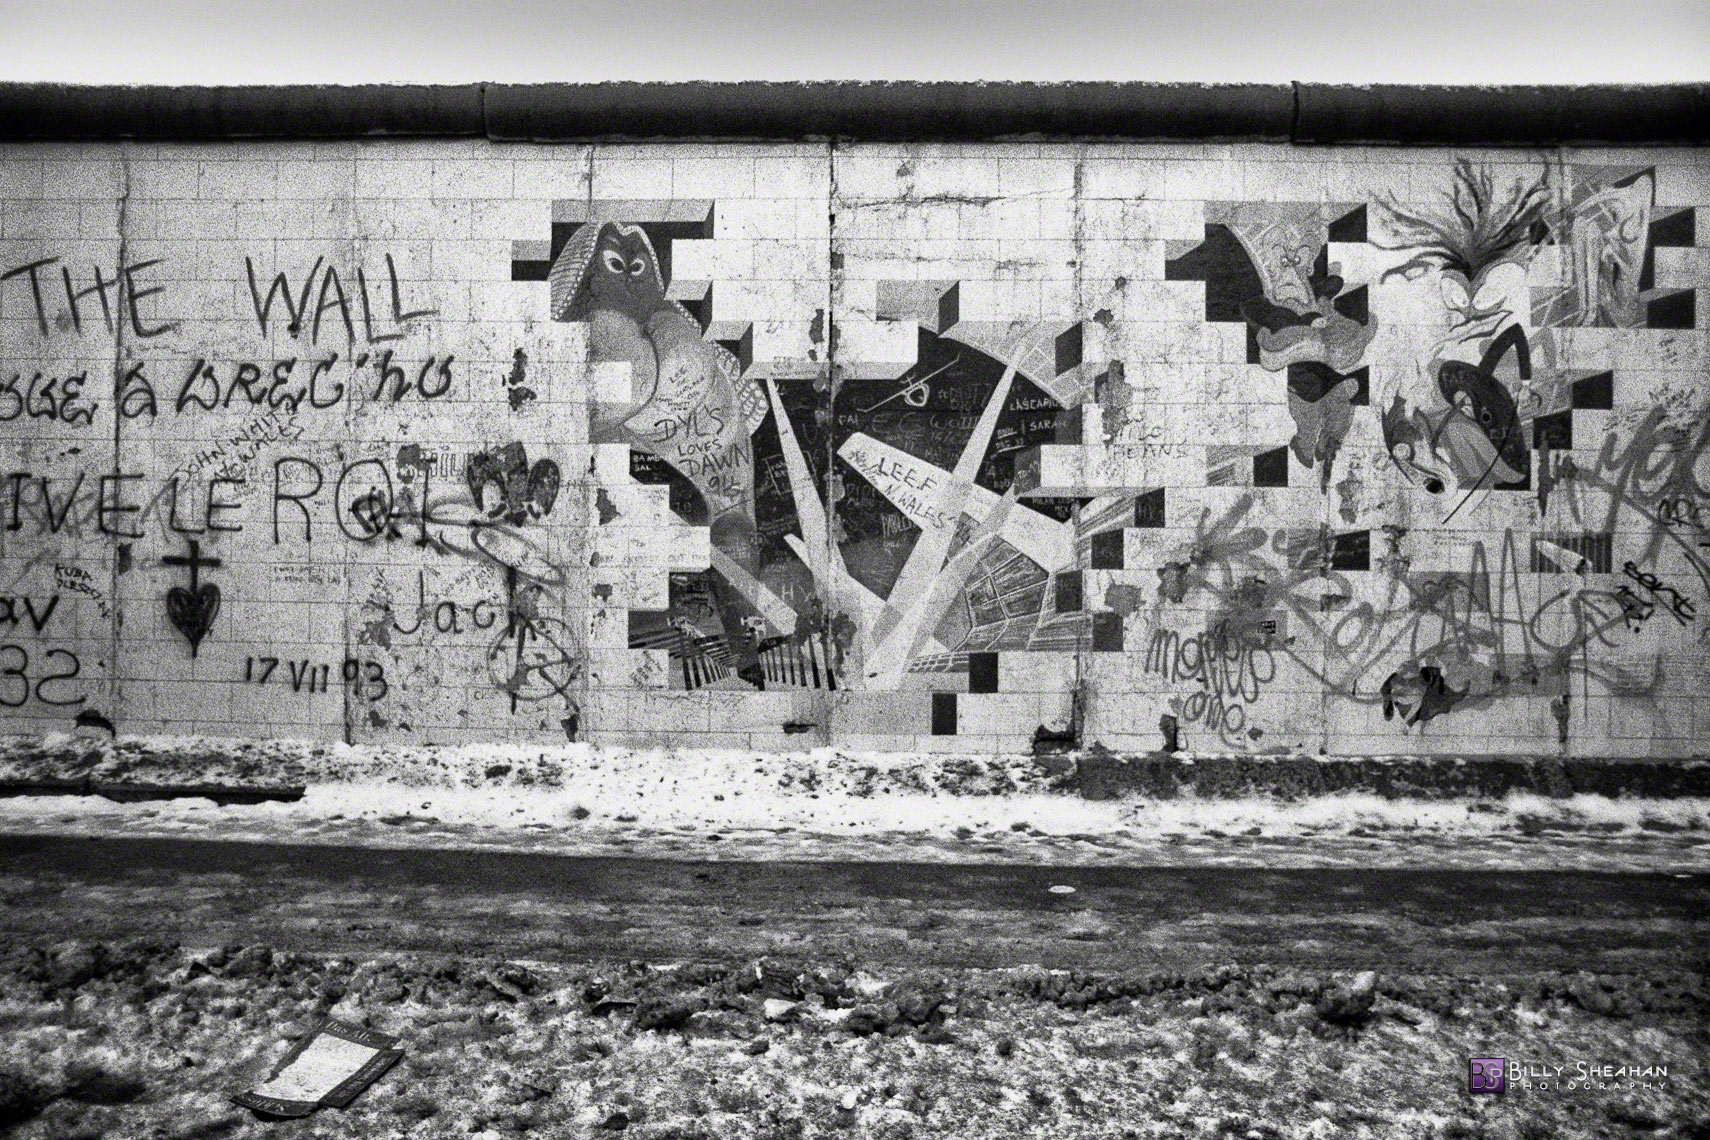 Berlin_Wall__The_Wall__Berlin__Germany_Germany-359_23_BW_D